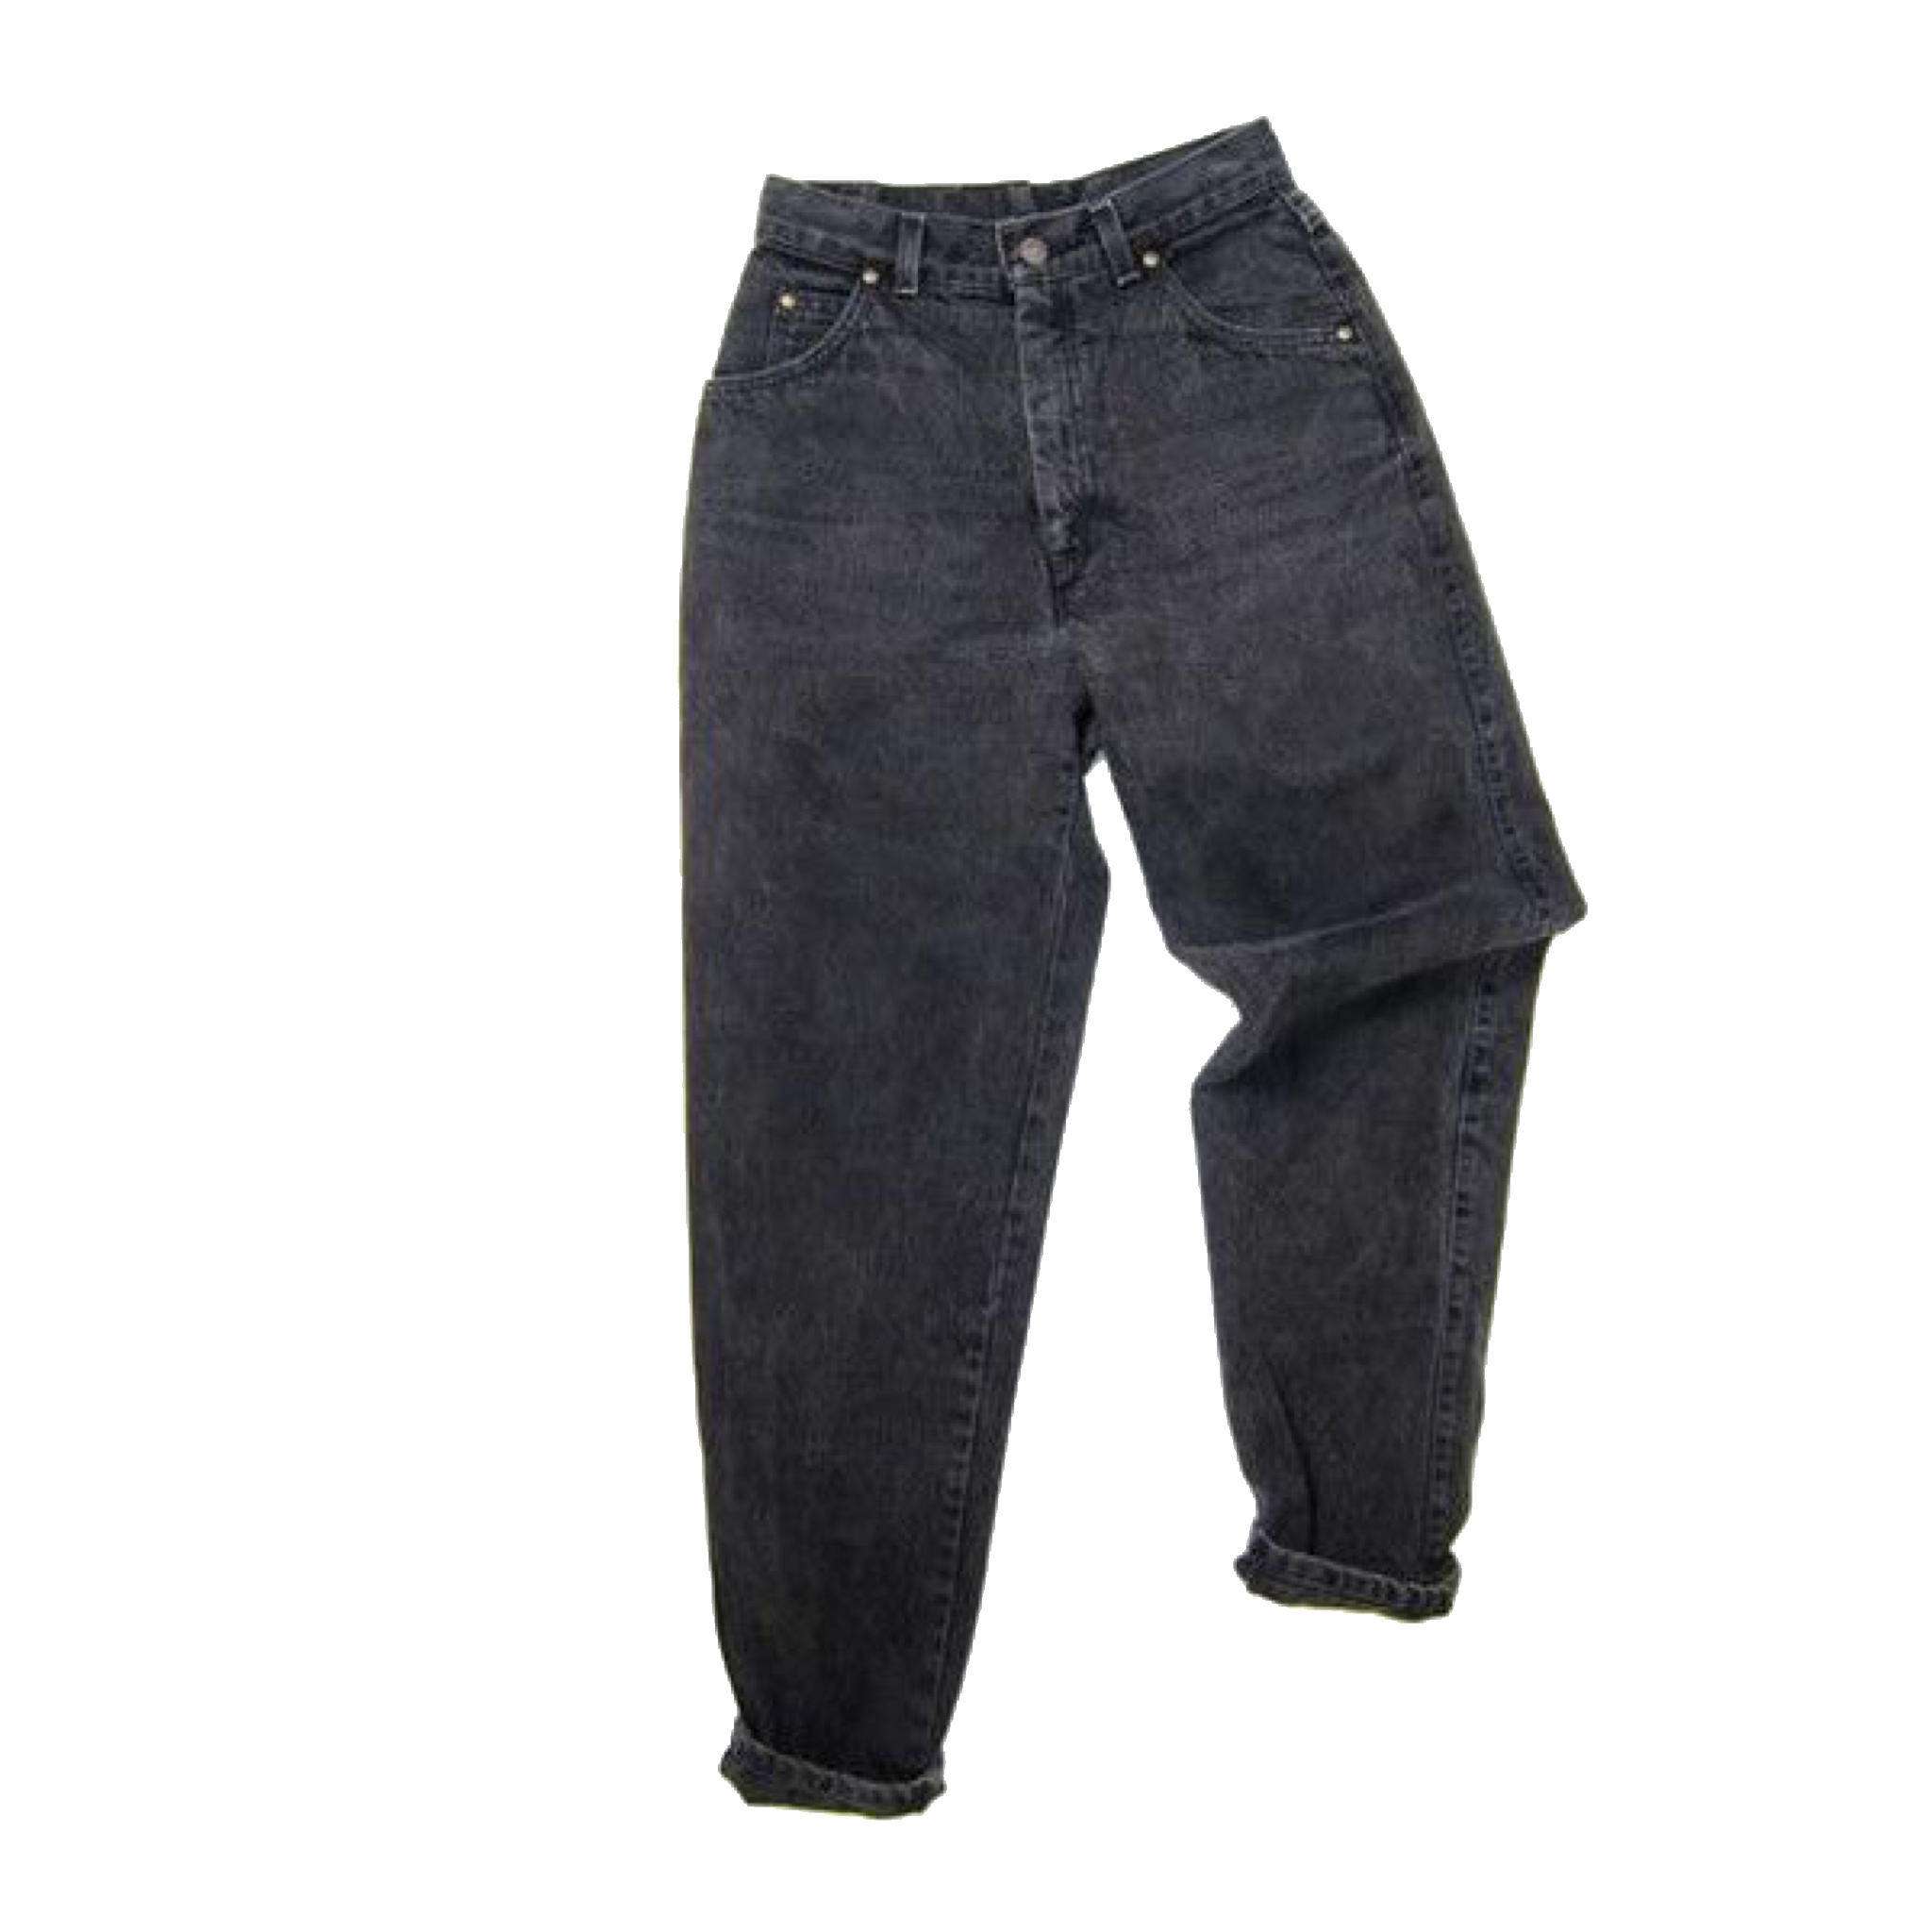 Mom jeans png. Pin by alex armstrong